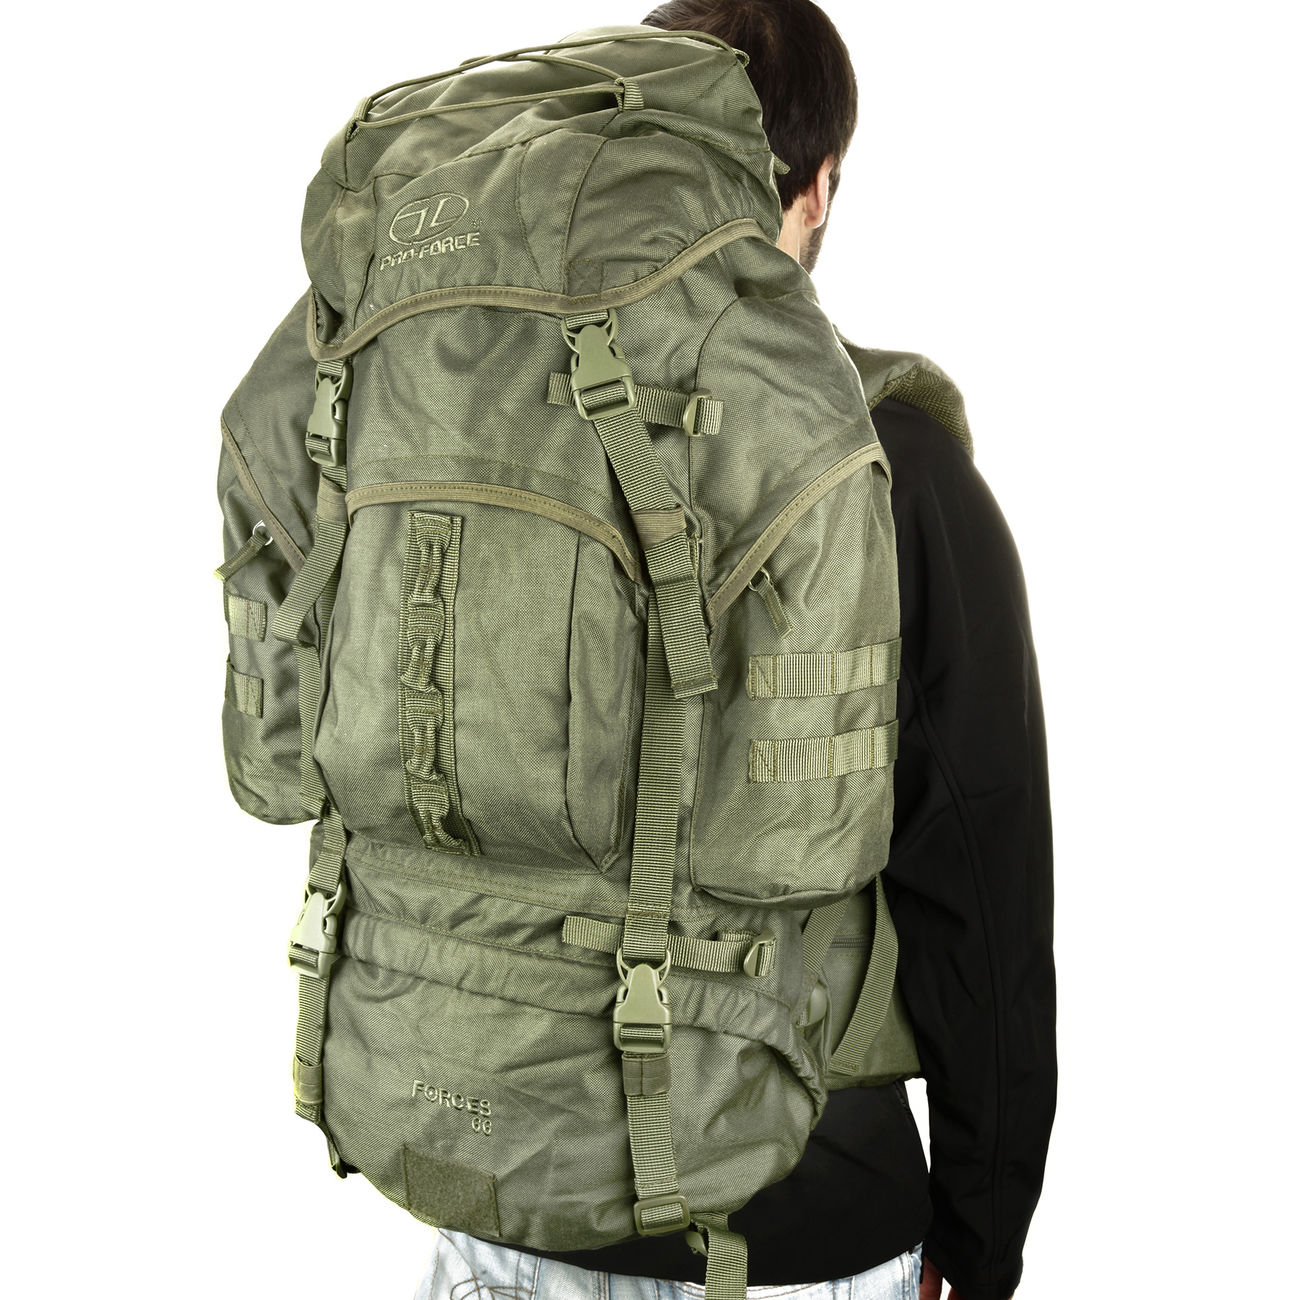 Highlander Rucksack Modell New Forces 66 Liter oliv 5